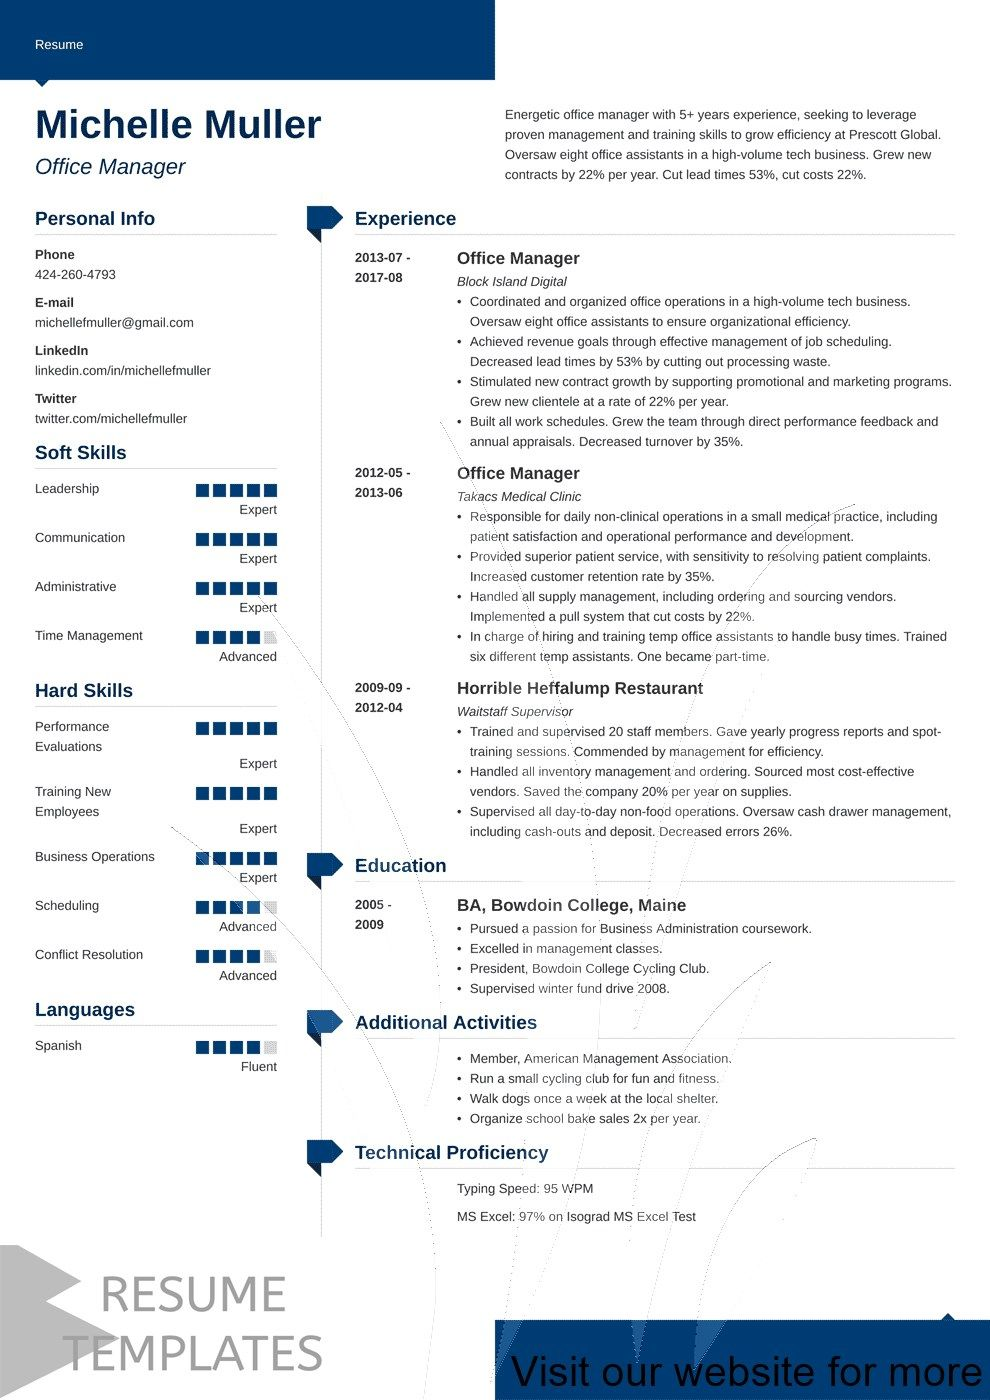 online resume builder and free download in 2020 Job